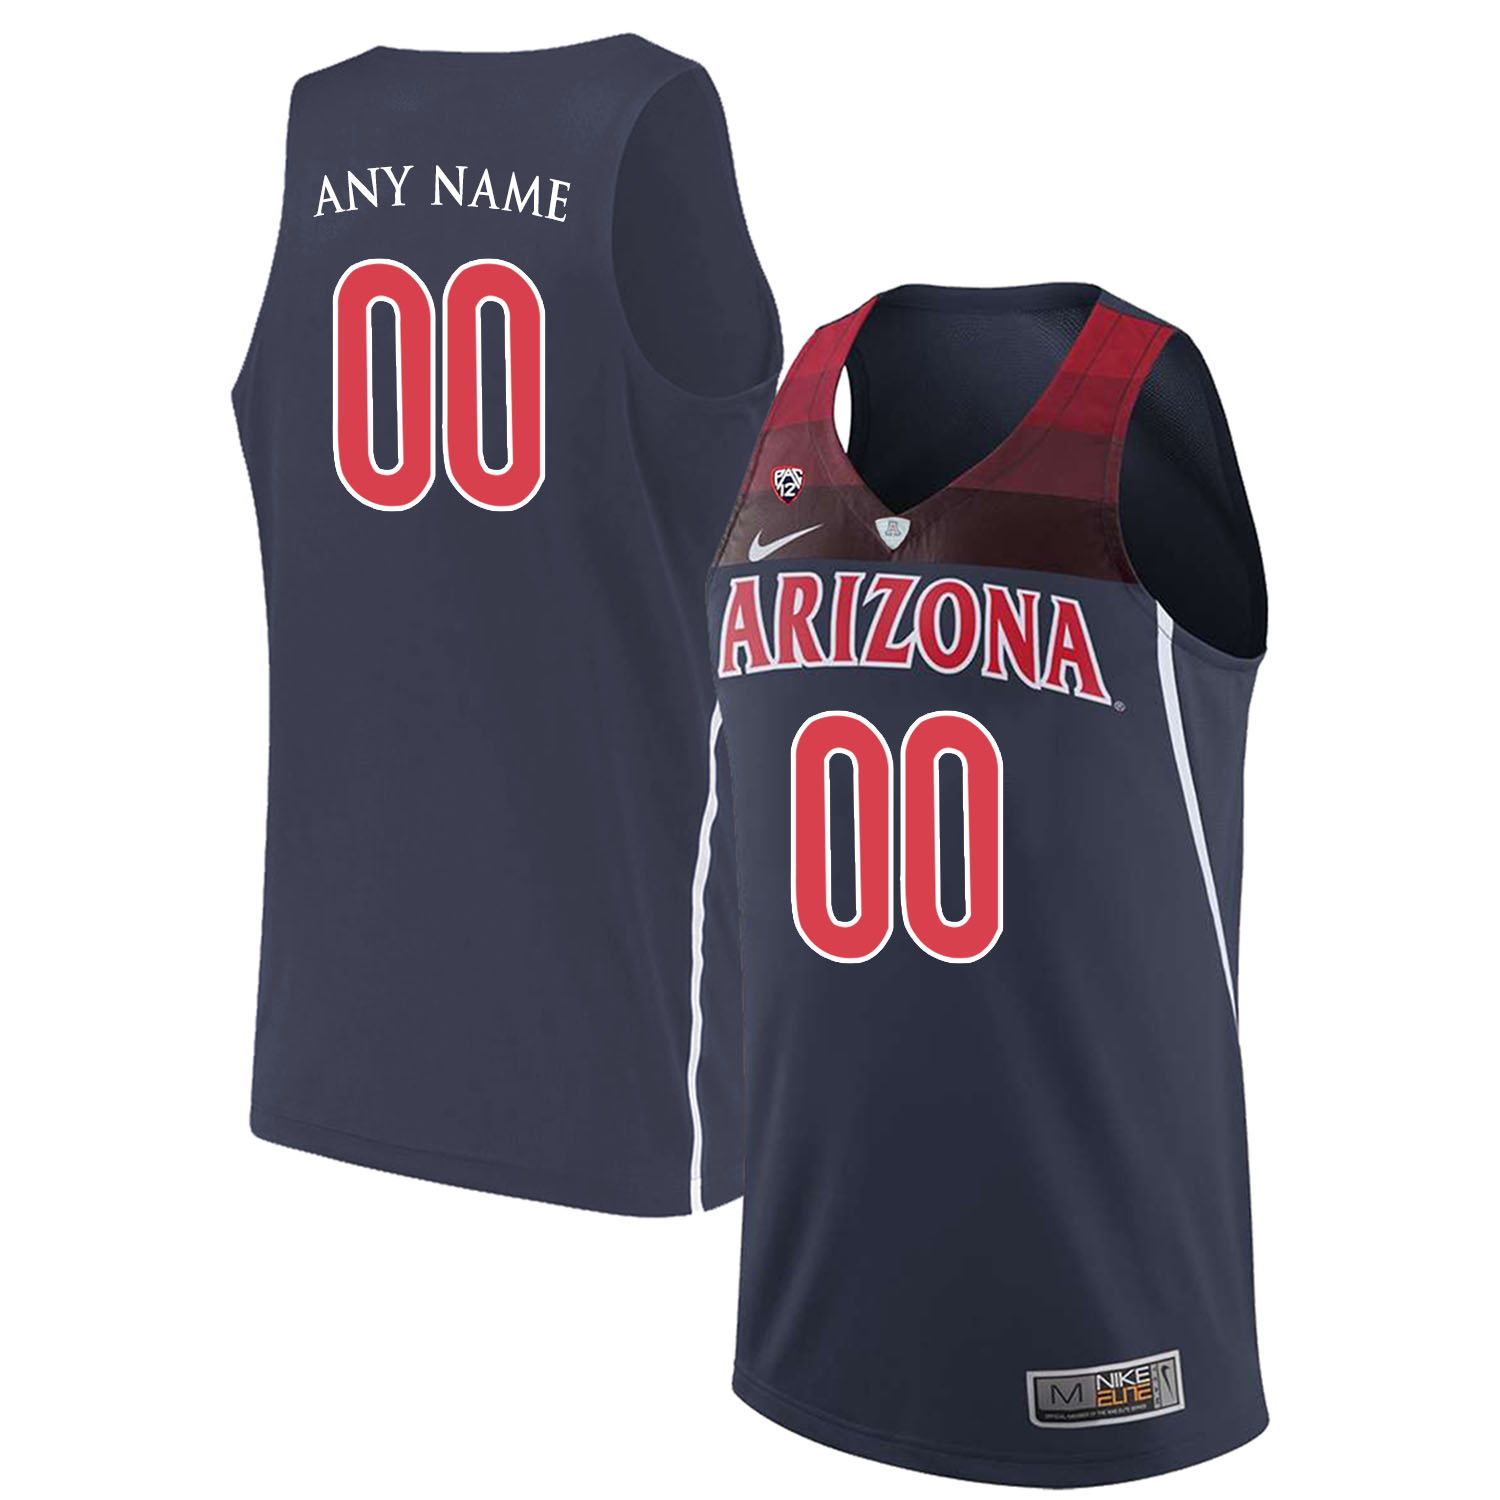 Arizona Wildcats Navy Men's Custom College Basketball Jersey